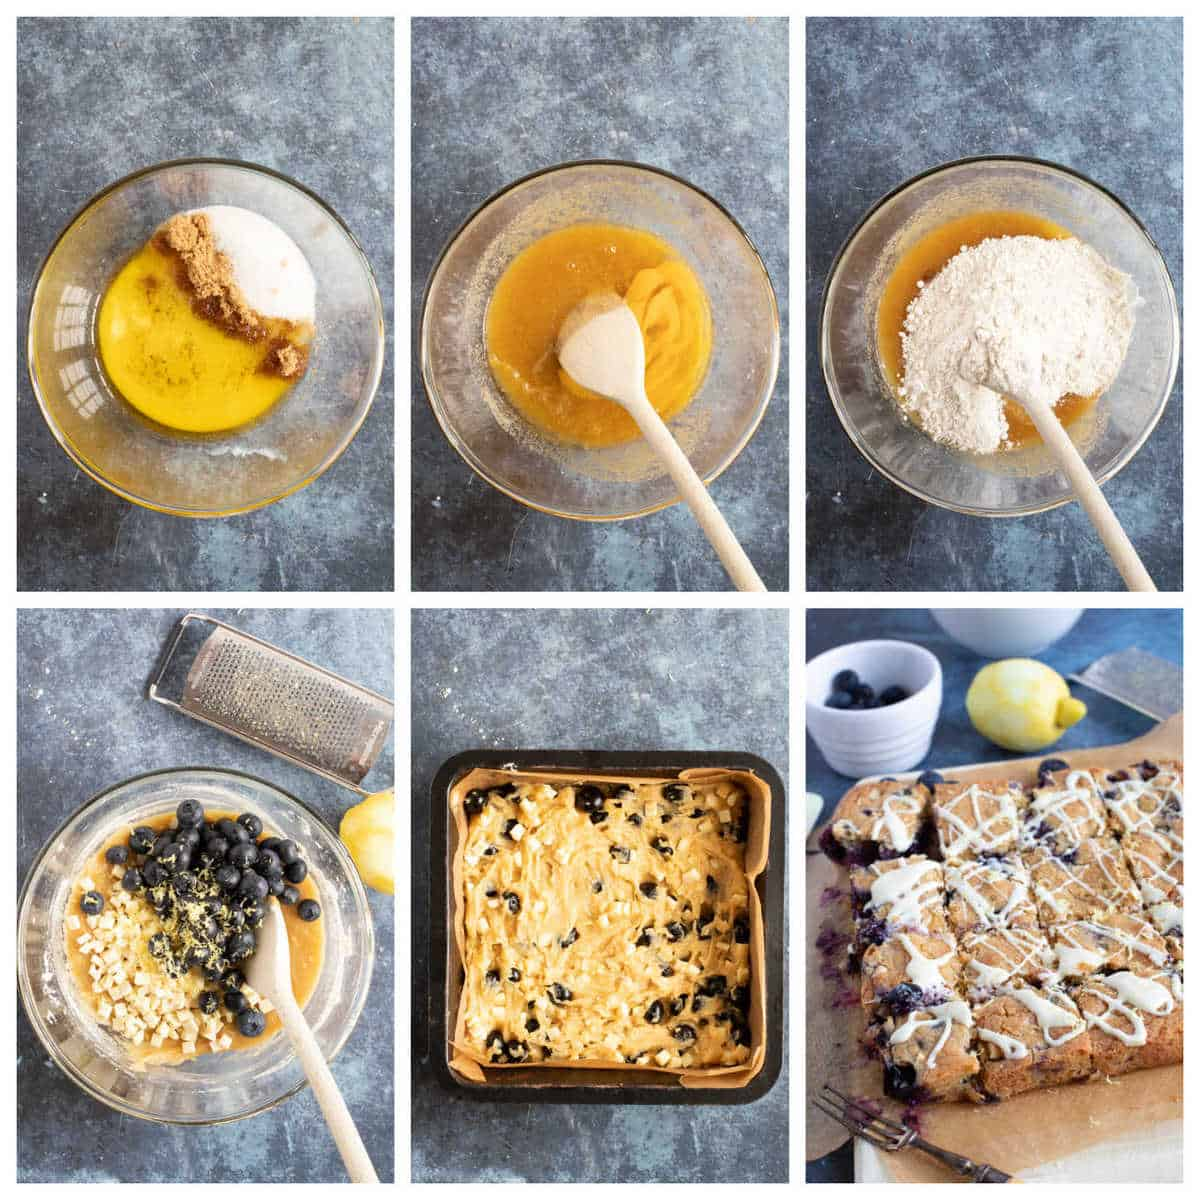 Step by step photo instructions for making lemon blueberry blondies.